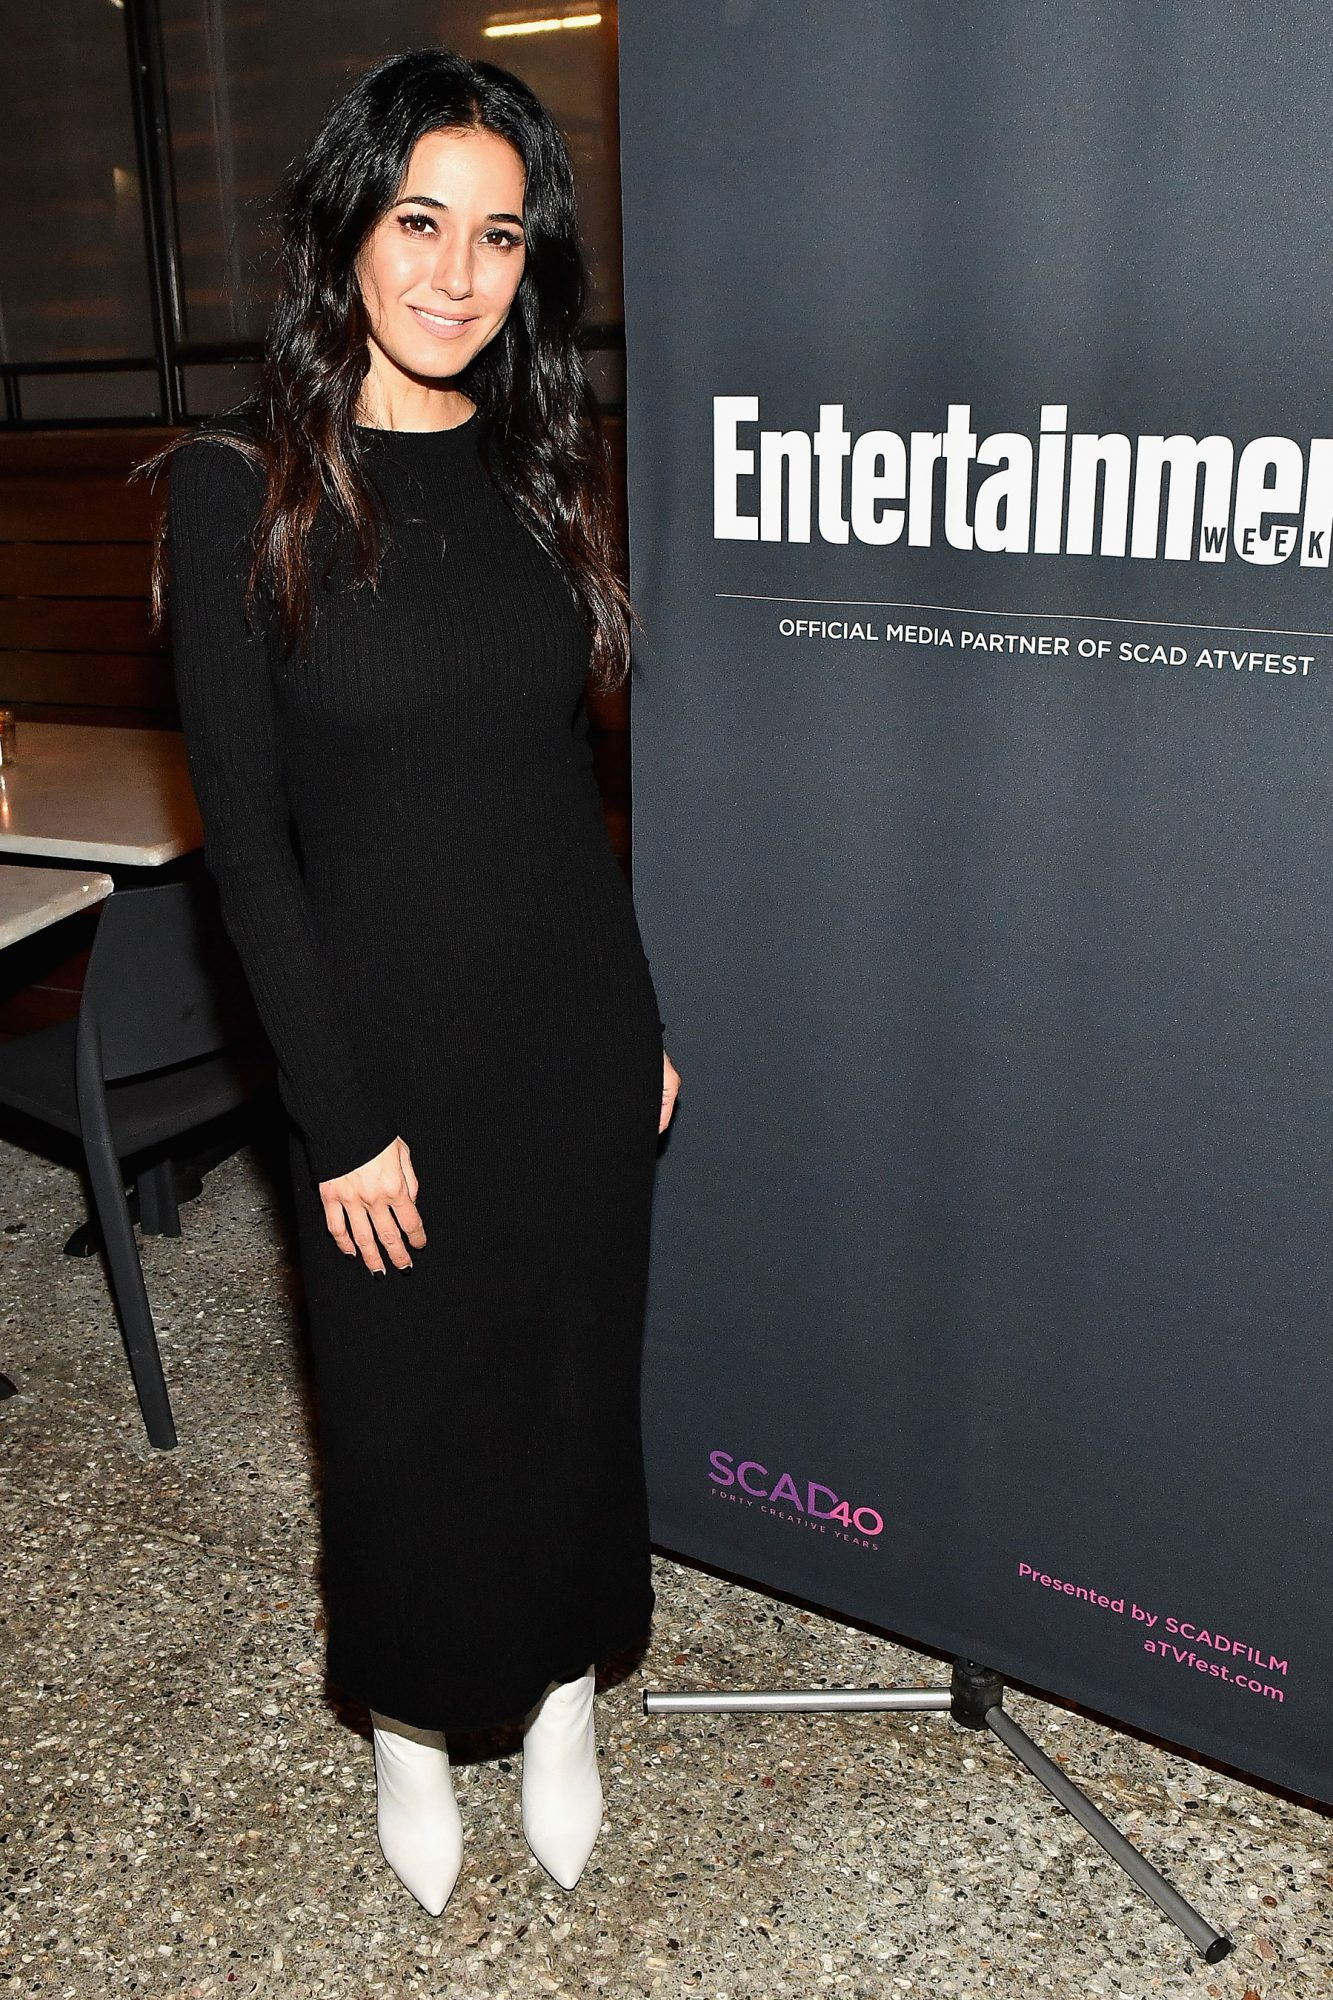 Emmanuelle Chriqui (The Passage) at the SCAD aTVfest and Entertainment Weekly party at Lure